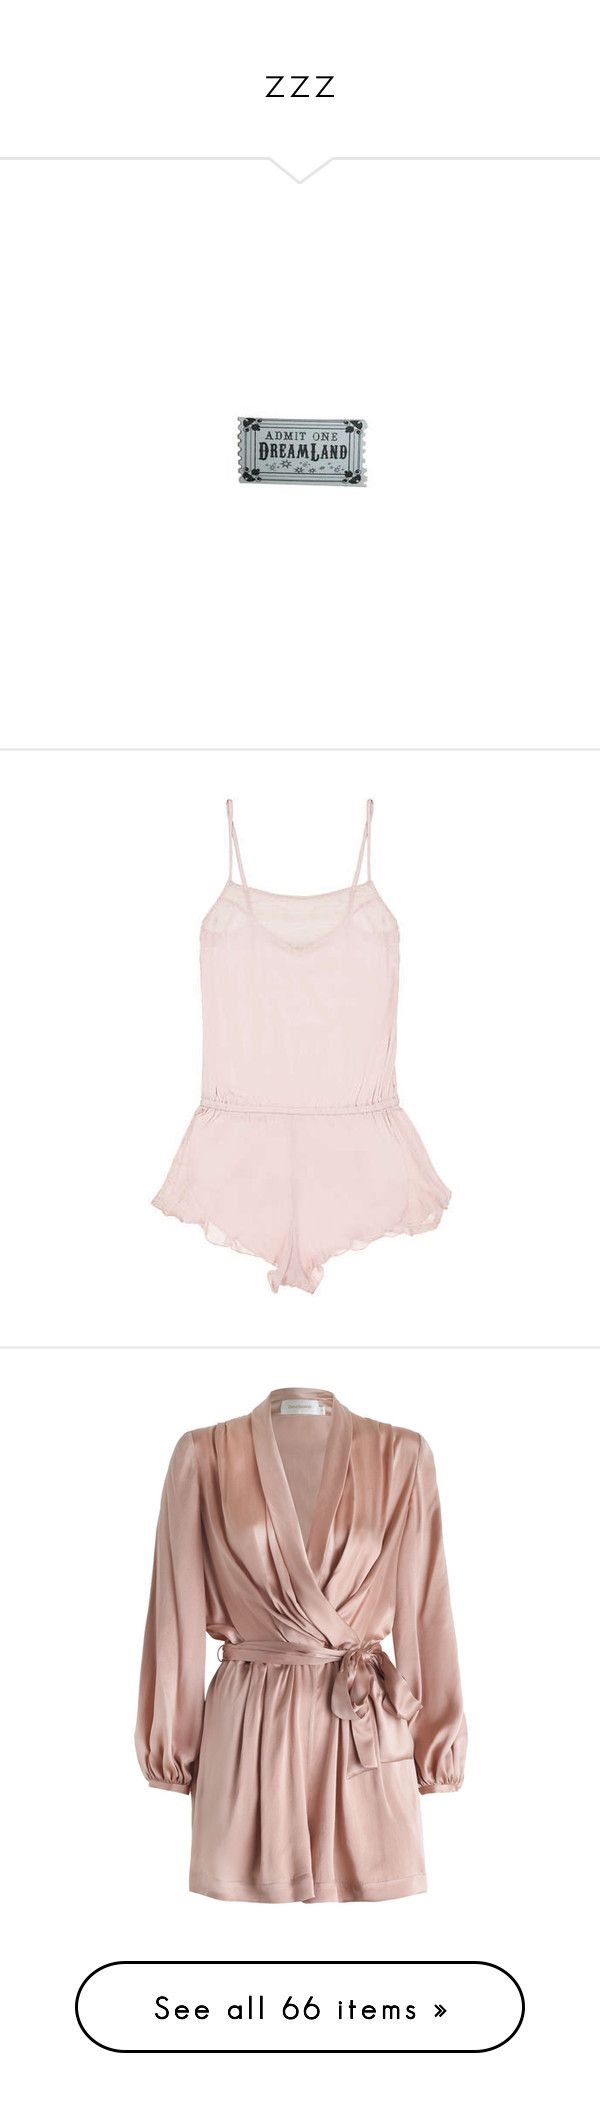 """""""zzz"""" by shiitstorm ❤ liked on Polyvore featuring intimates, eberjey, teddy lingerie, holiday lingerie, jumpsuits, rompers, dresses, playsuit, zimmermann and draped jumpsuit"""